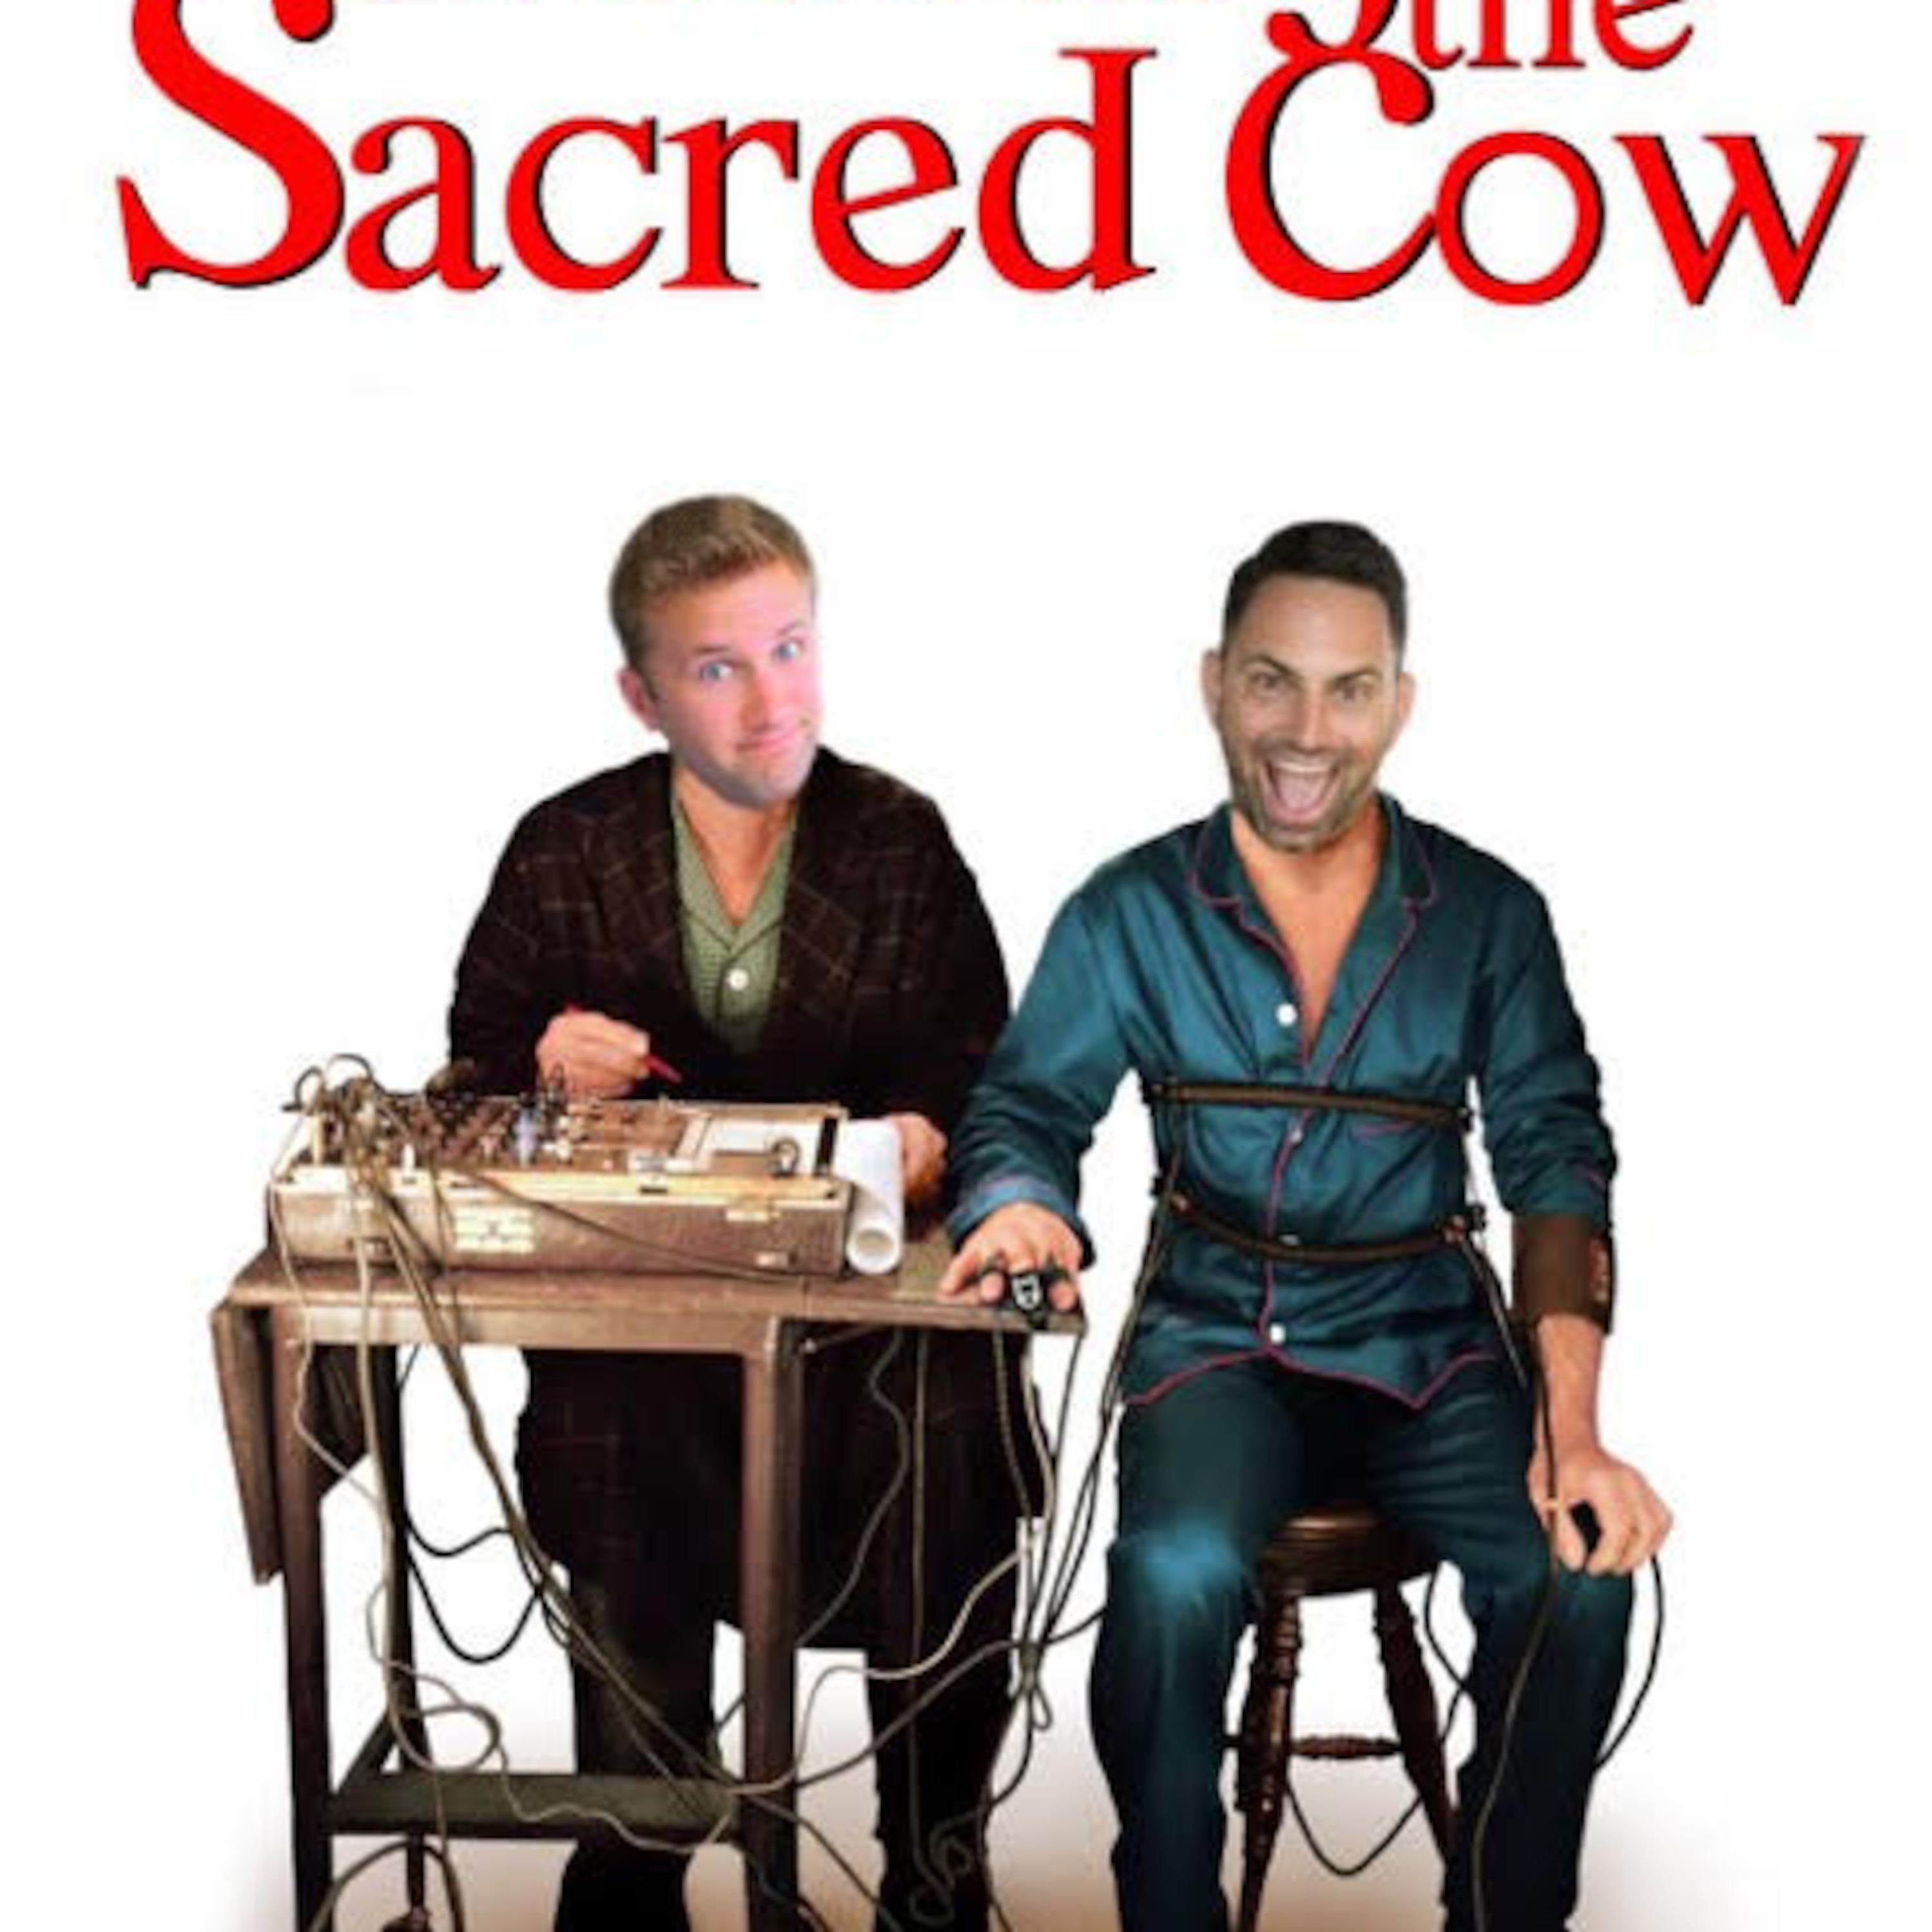 Gutting the Sacred Cow